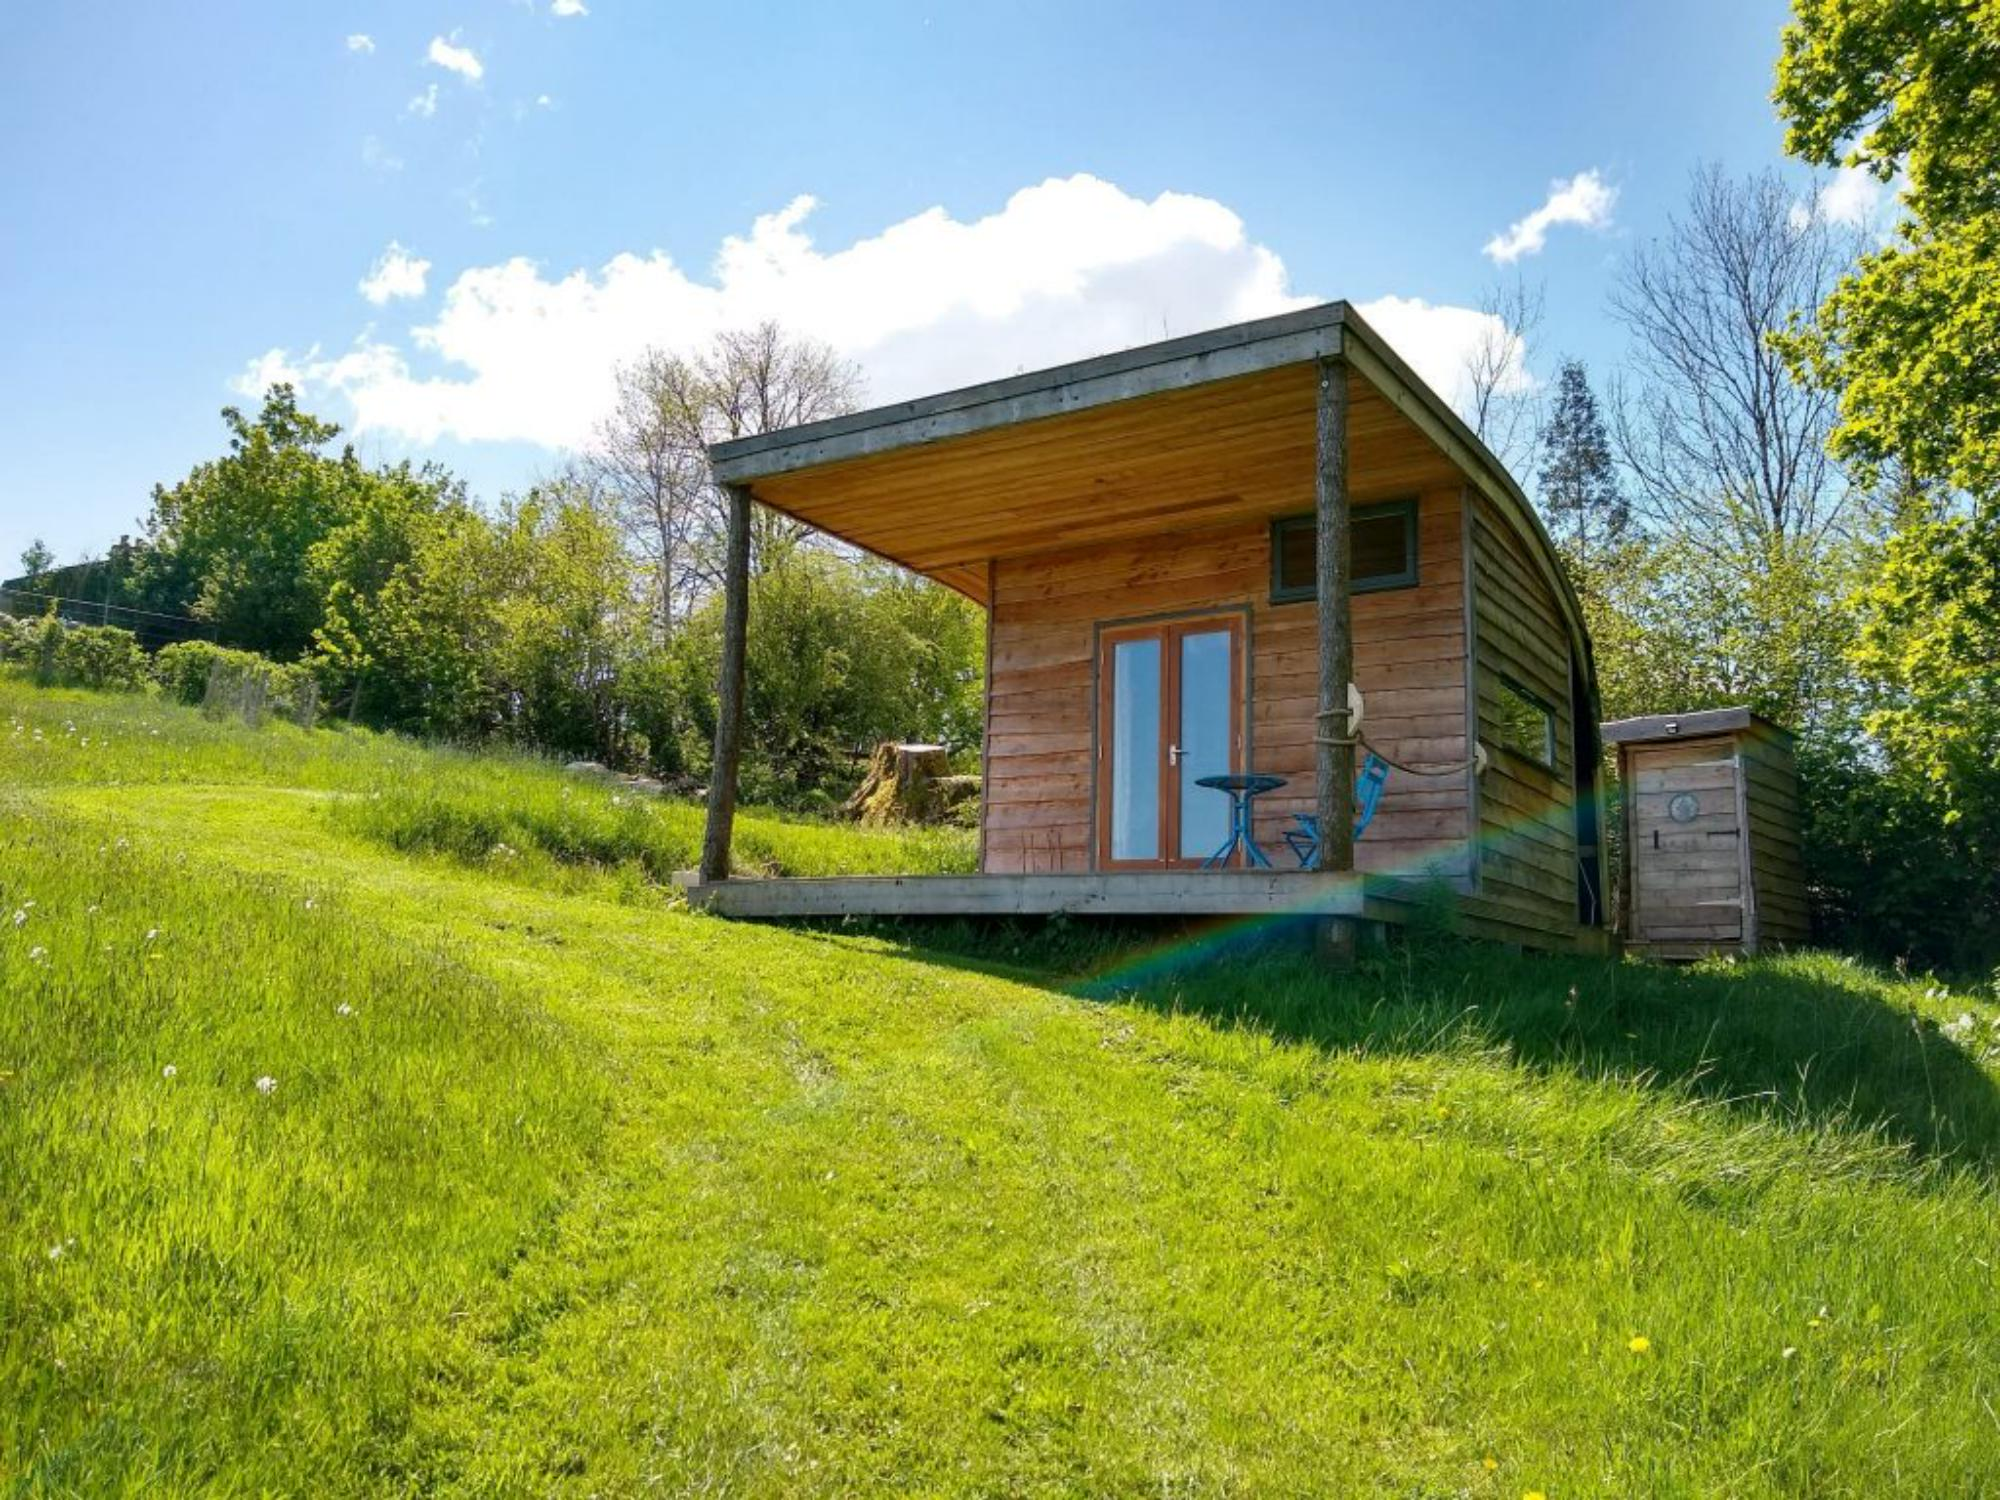 Glamping in Wales – I Love This Campsite